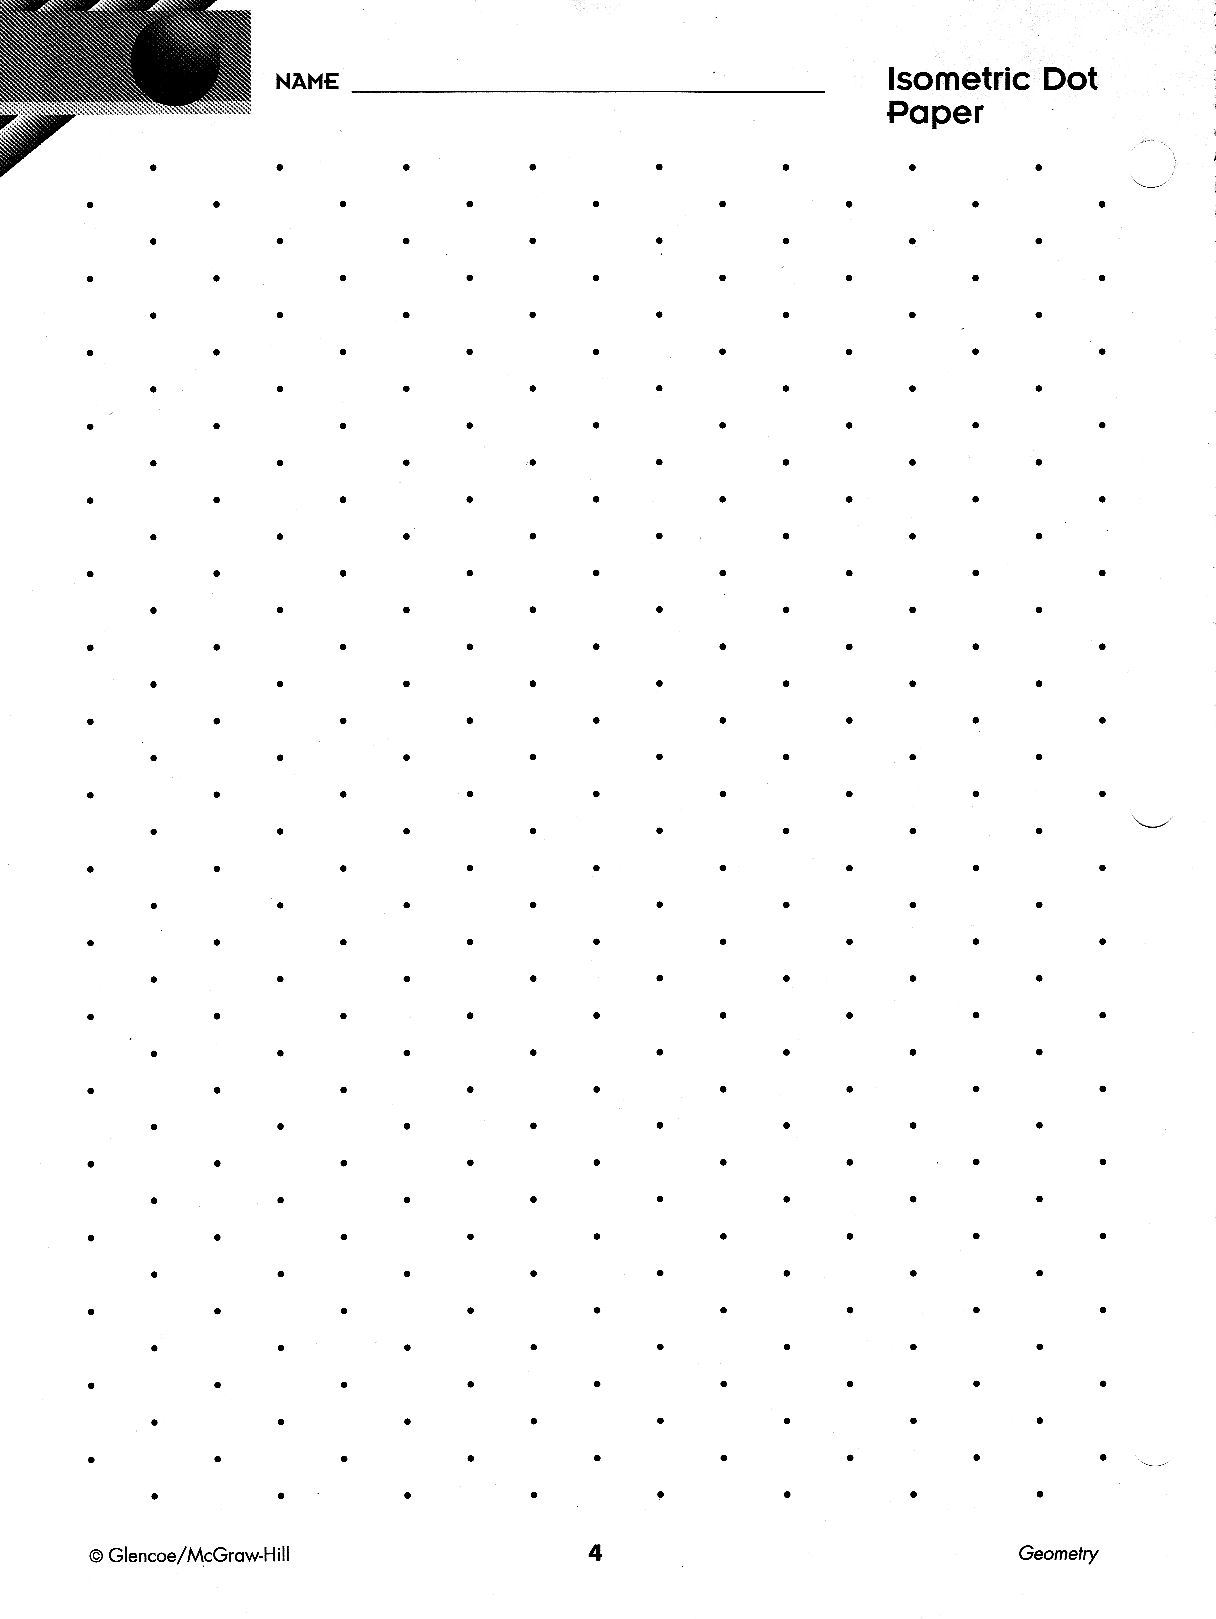 picture about Printable Isometric Dot Paper named Precalculus Paper and Habits